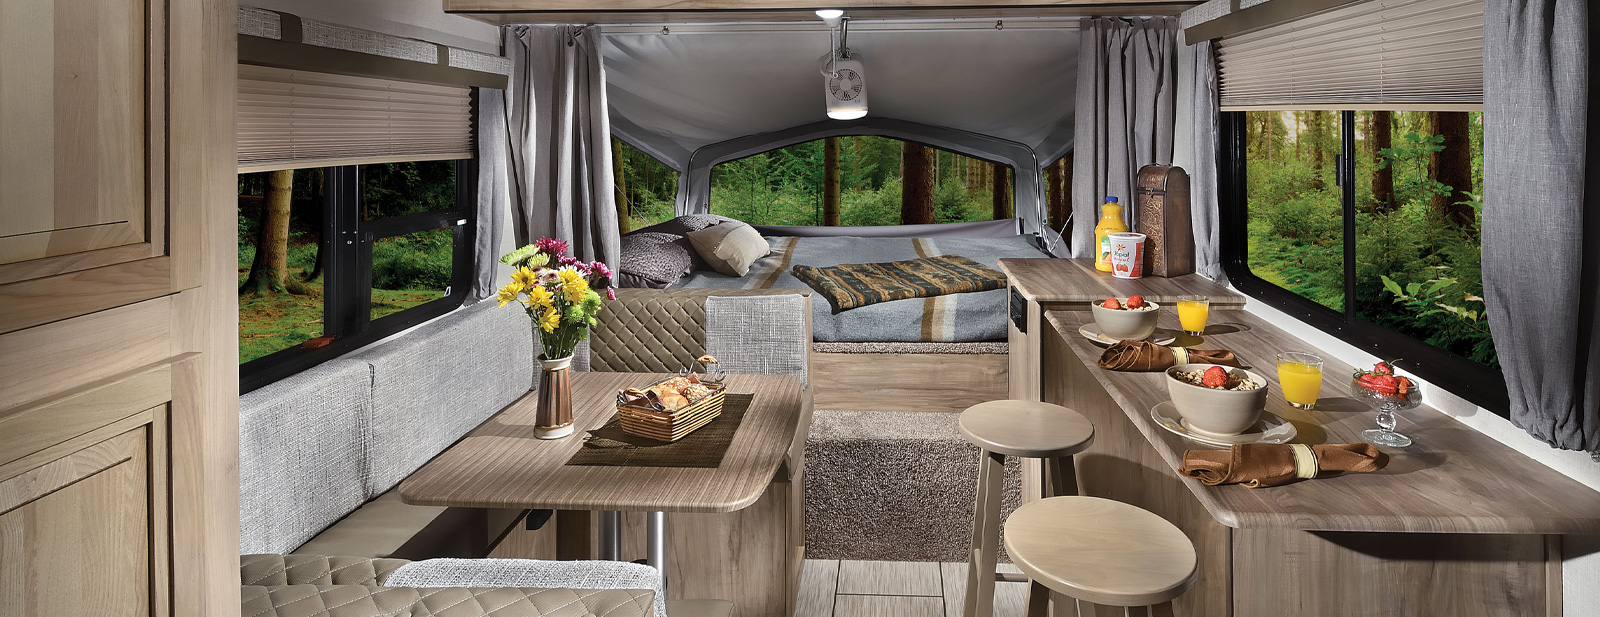 SolAire eXpandable Travel Trailers by Palomino